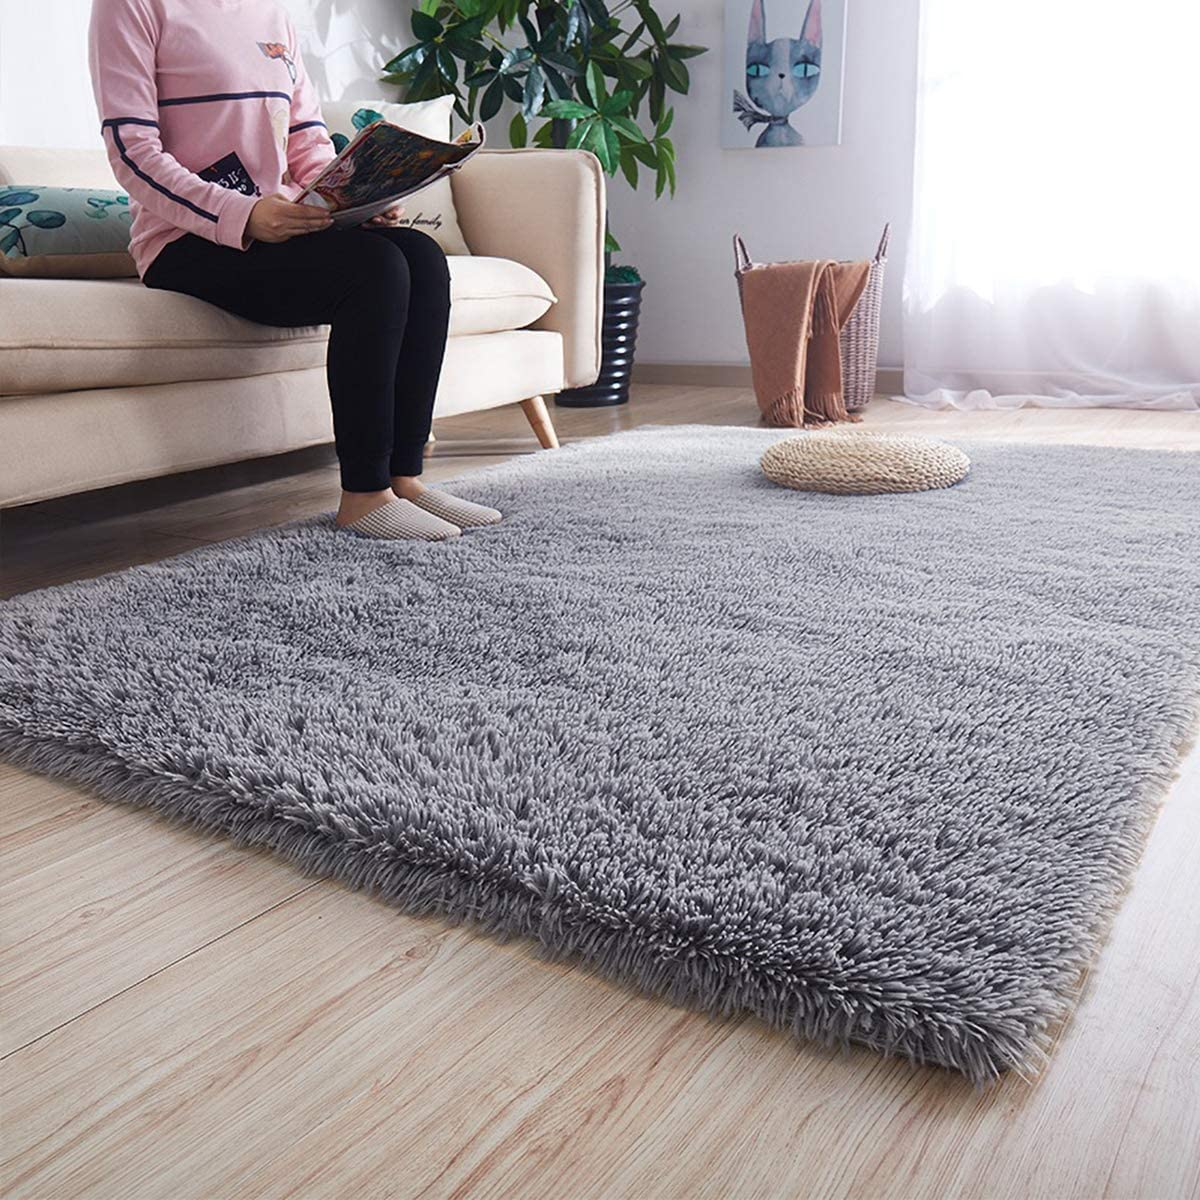 Noahas Super Soft Modern Shag Area Rugs Fluffy Living Room Carpet Comfy  Bedroom Home Decorate Floor Kids Playing Mat, 8 x 8.8 Feets, Grey